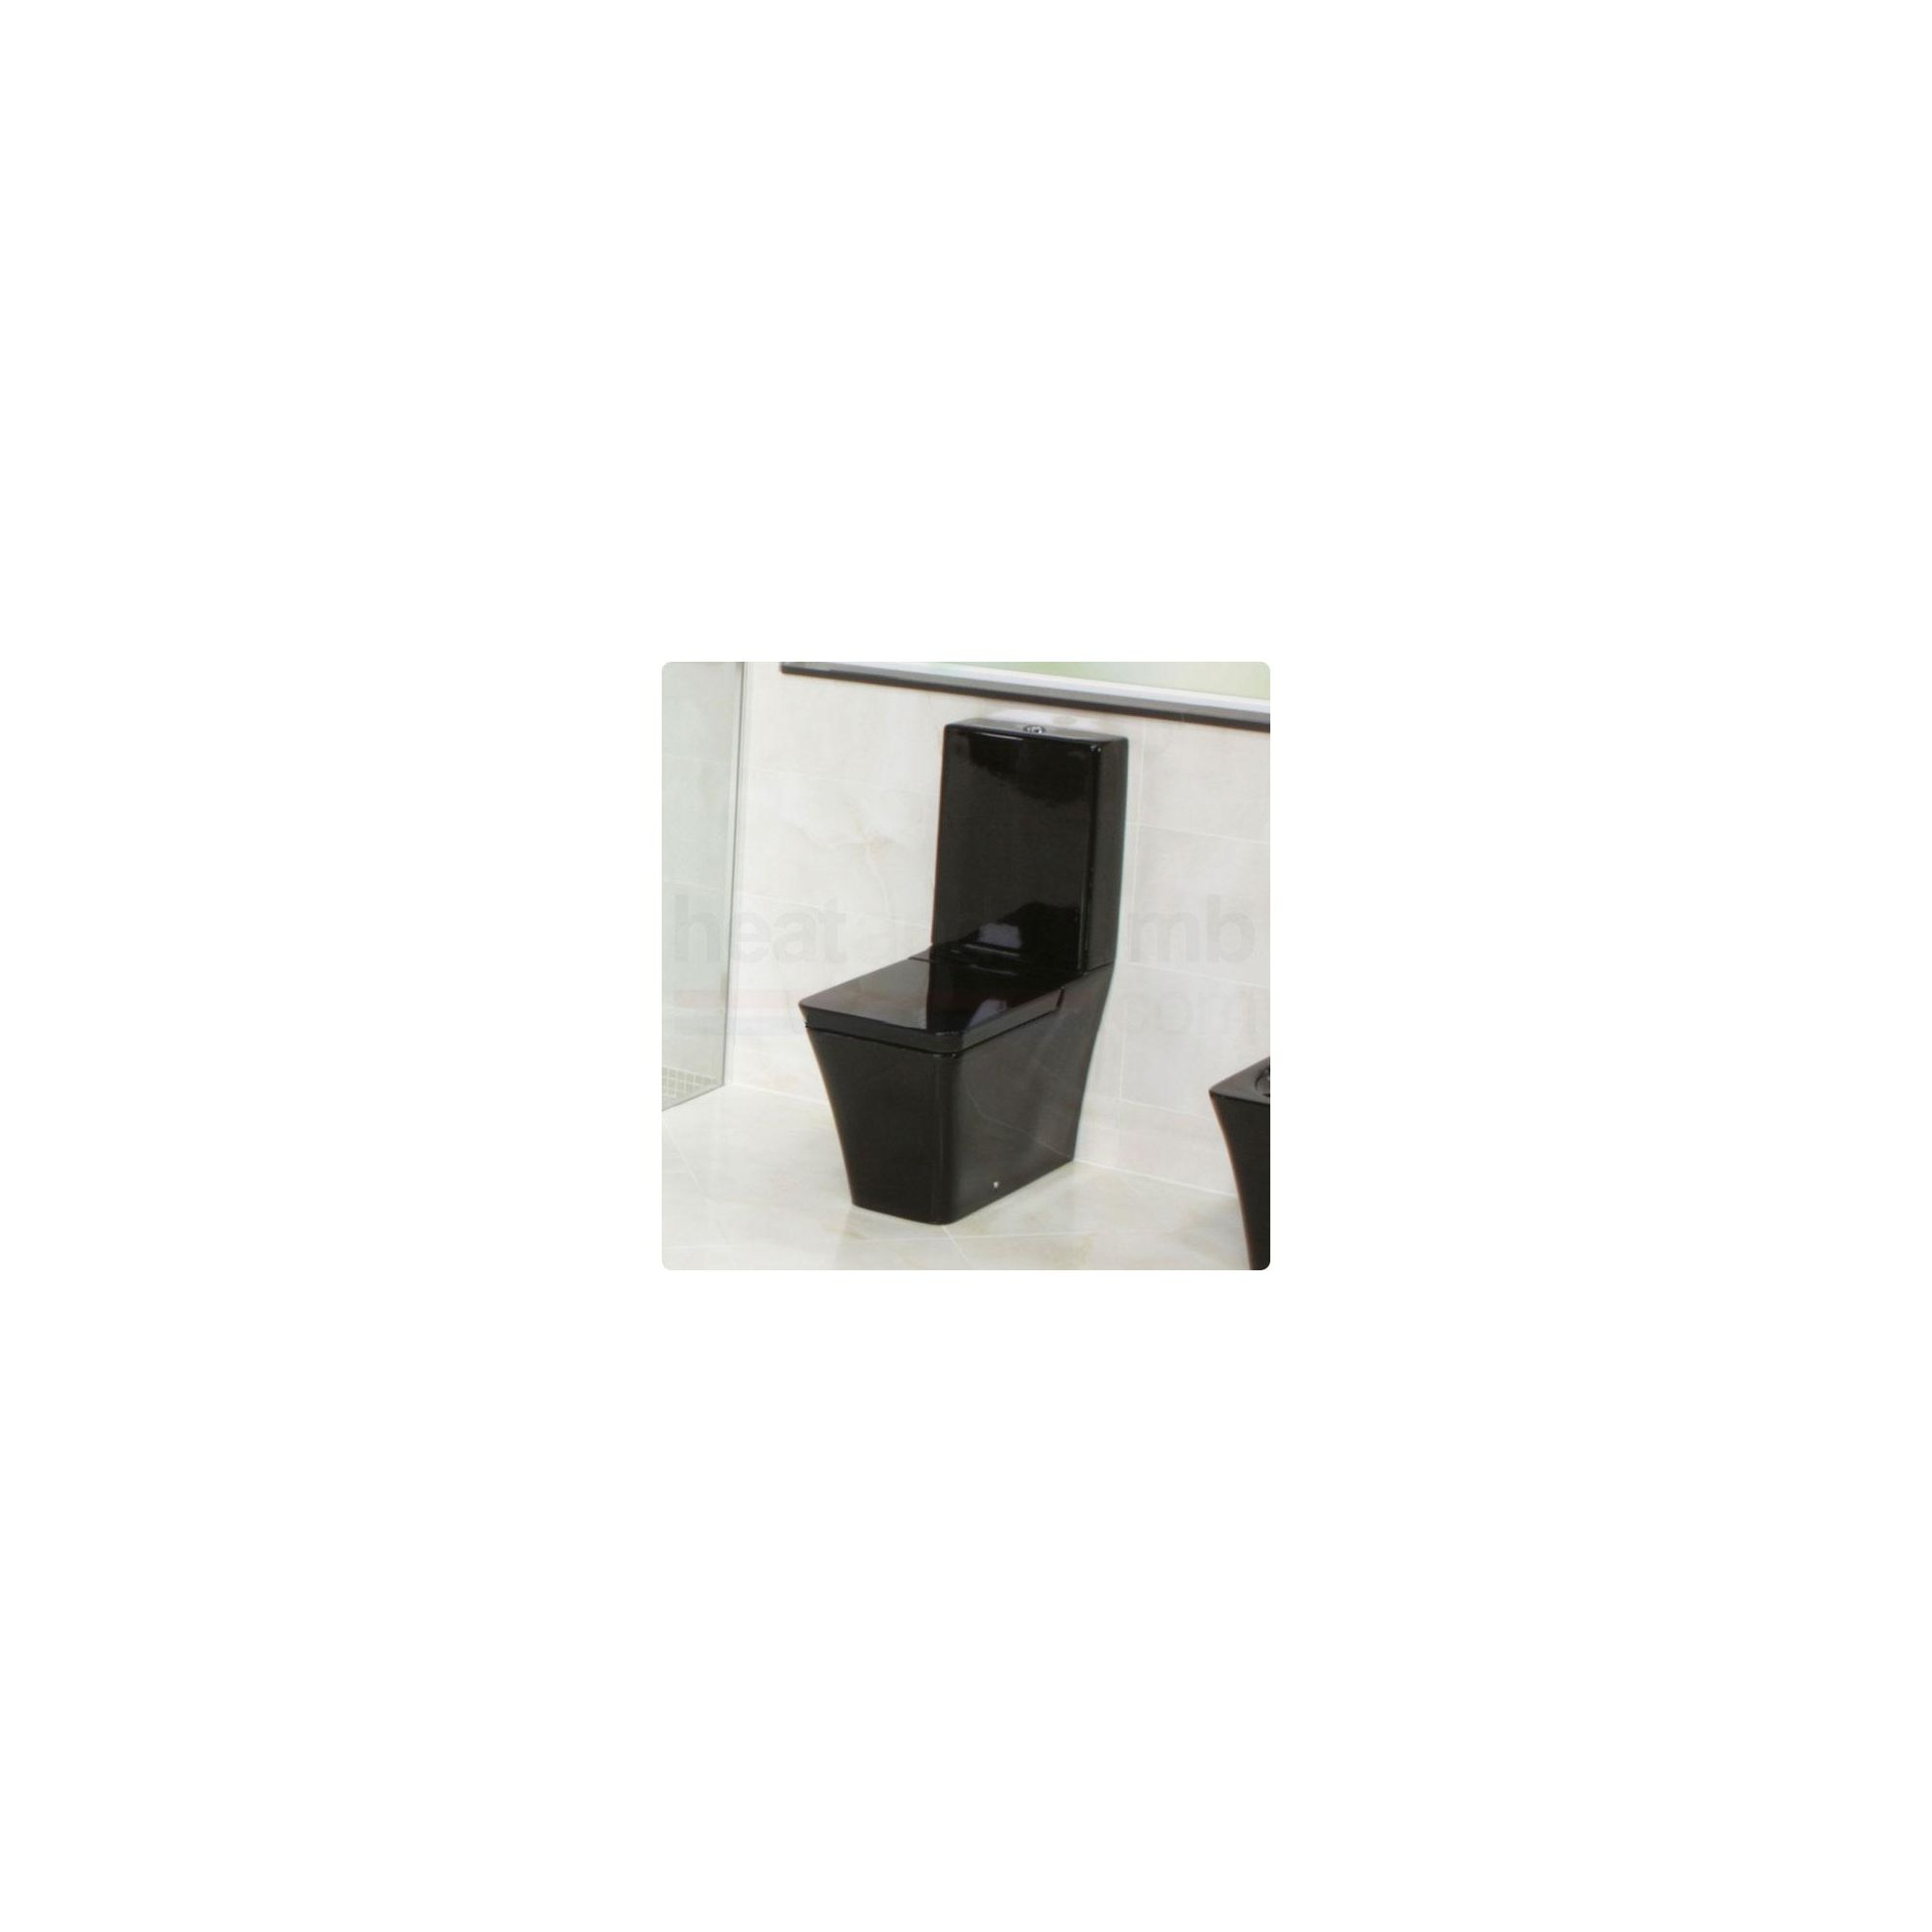 RAK Opulence Black Close Coupled Toilet with Soft Close Toilet Seat at Tesco Direct